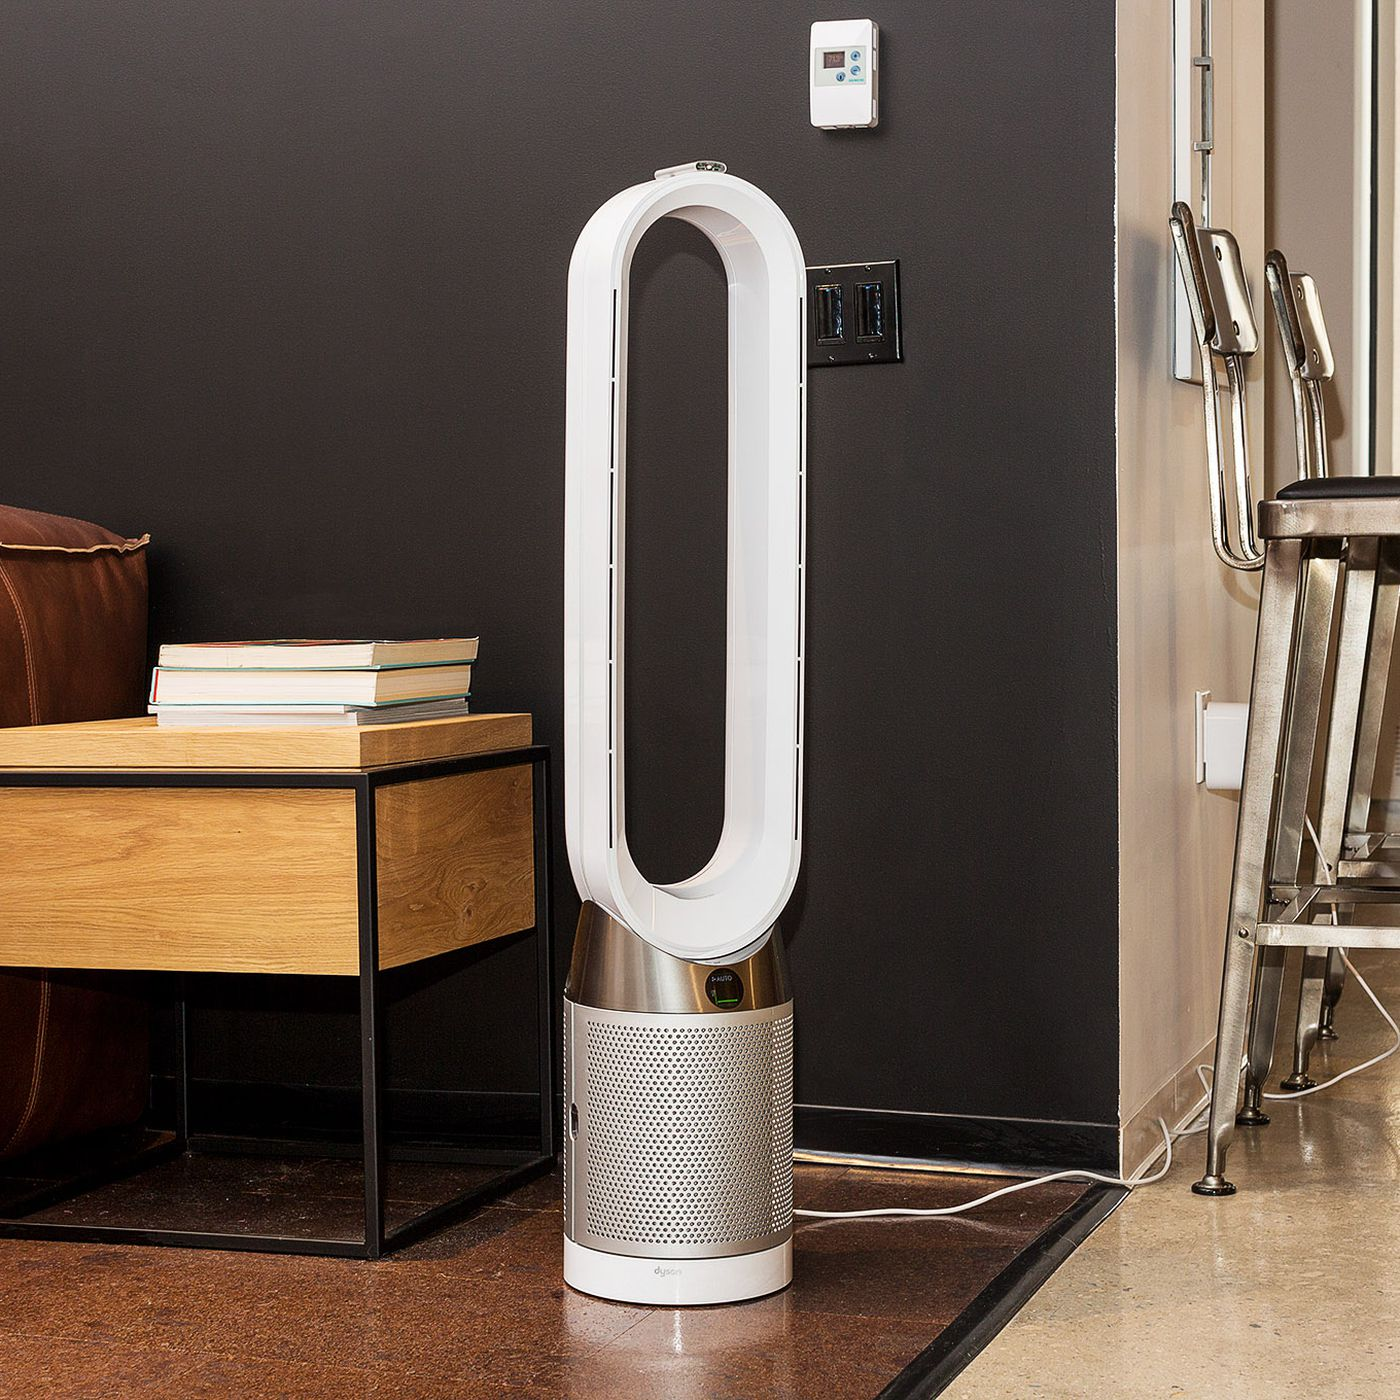 Dyson S New Air Purifier Has An Lcd Screen That Tells You What It S Cleaning The Verge